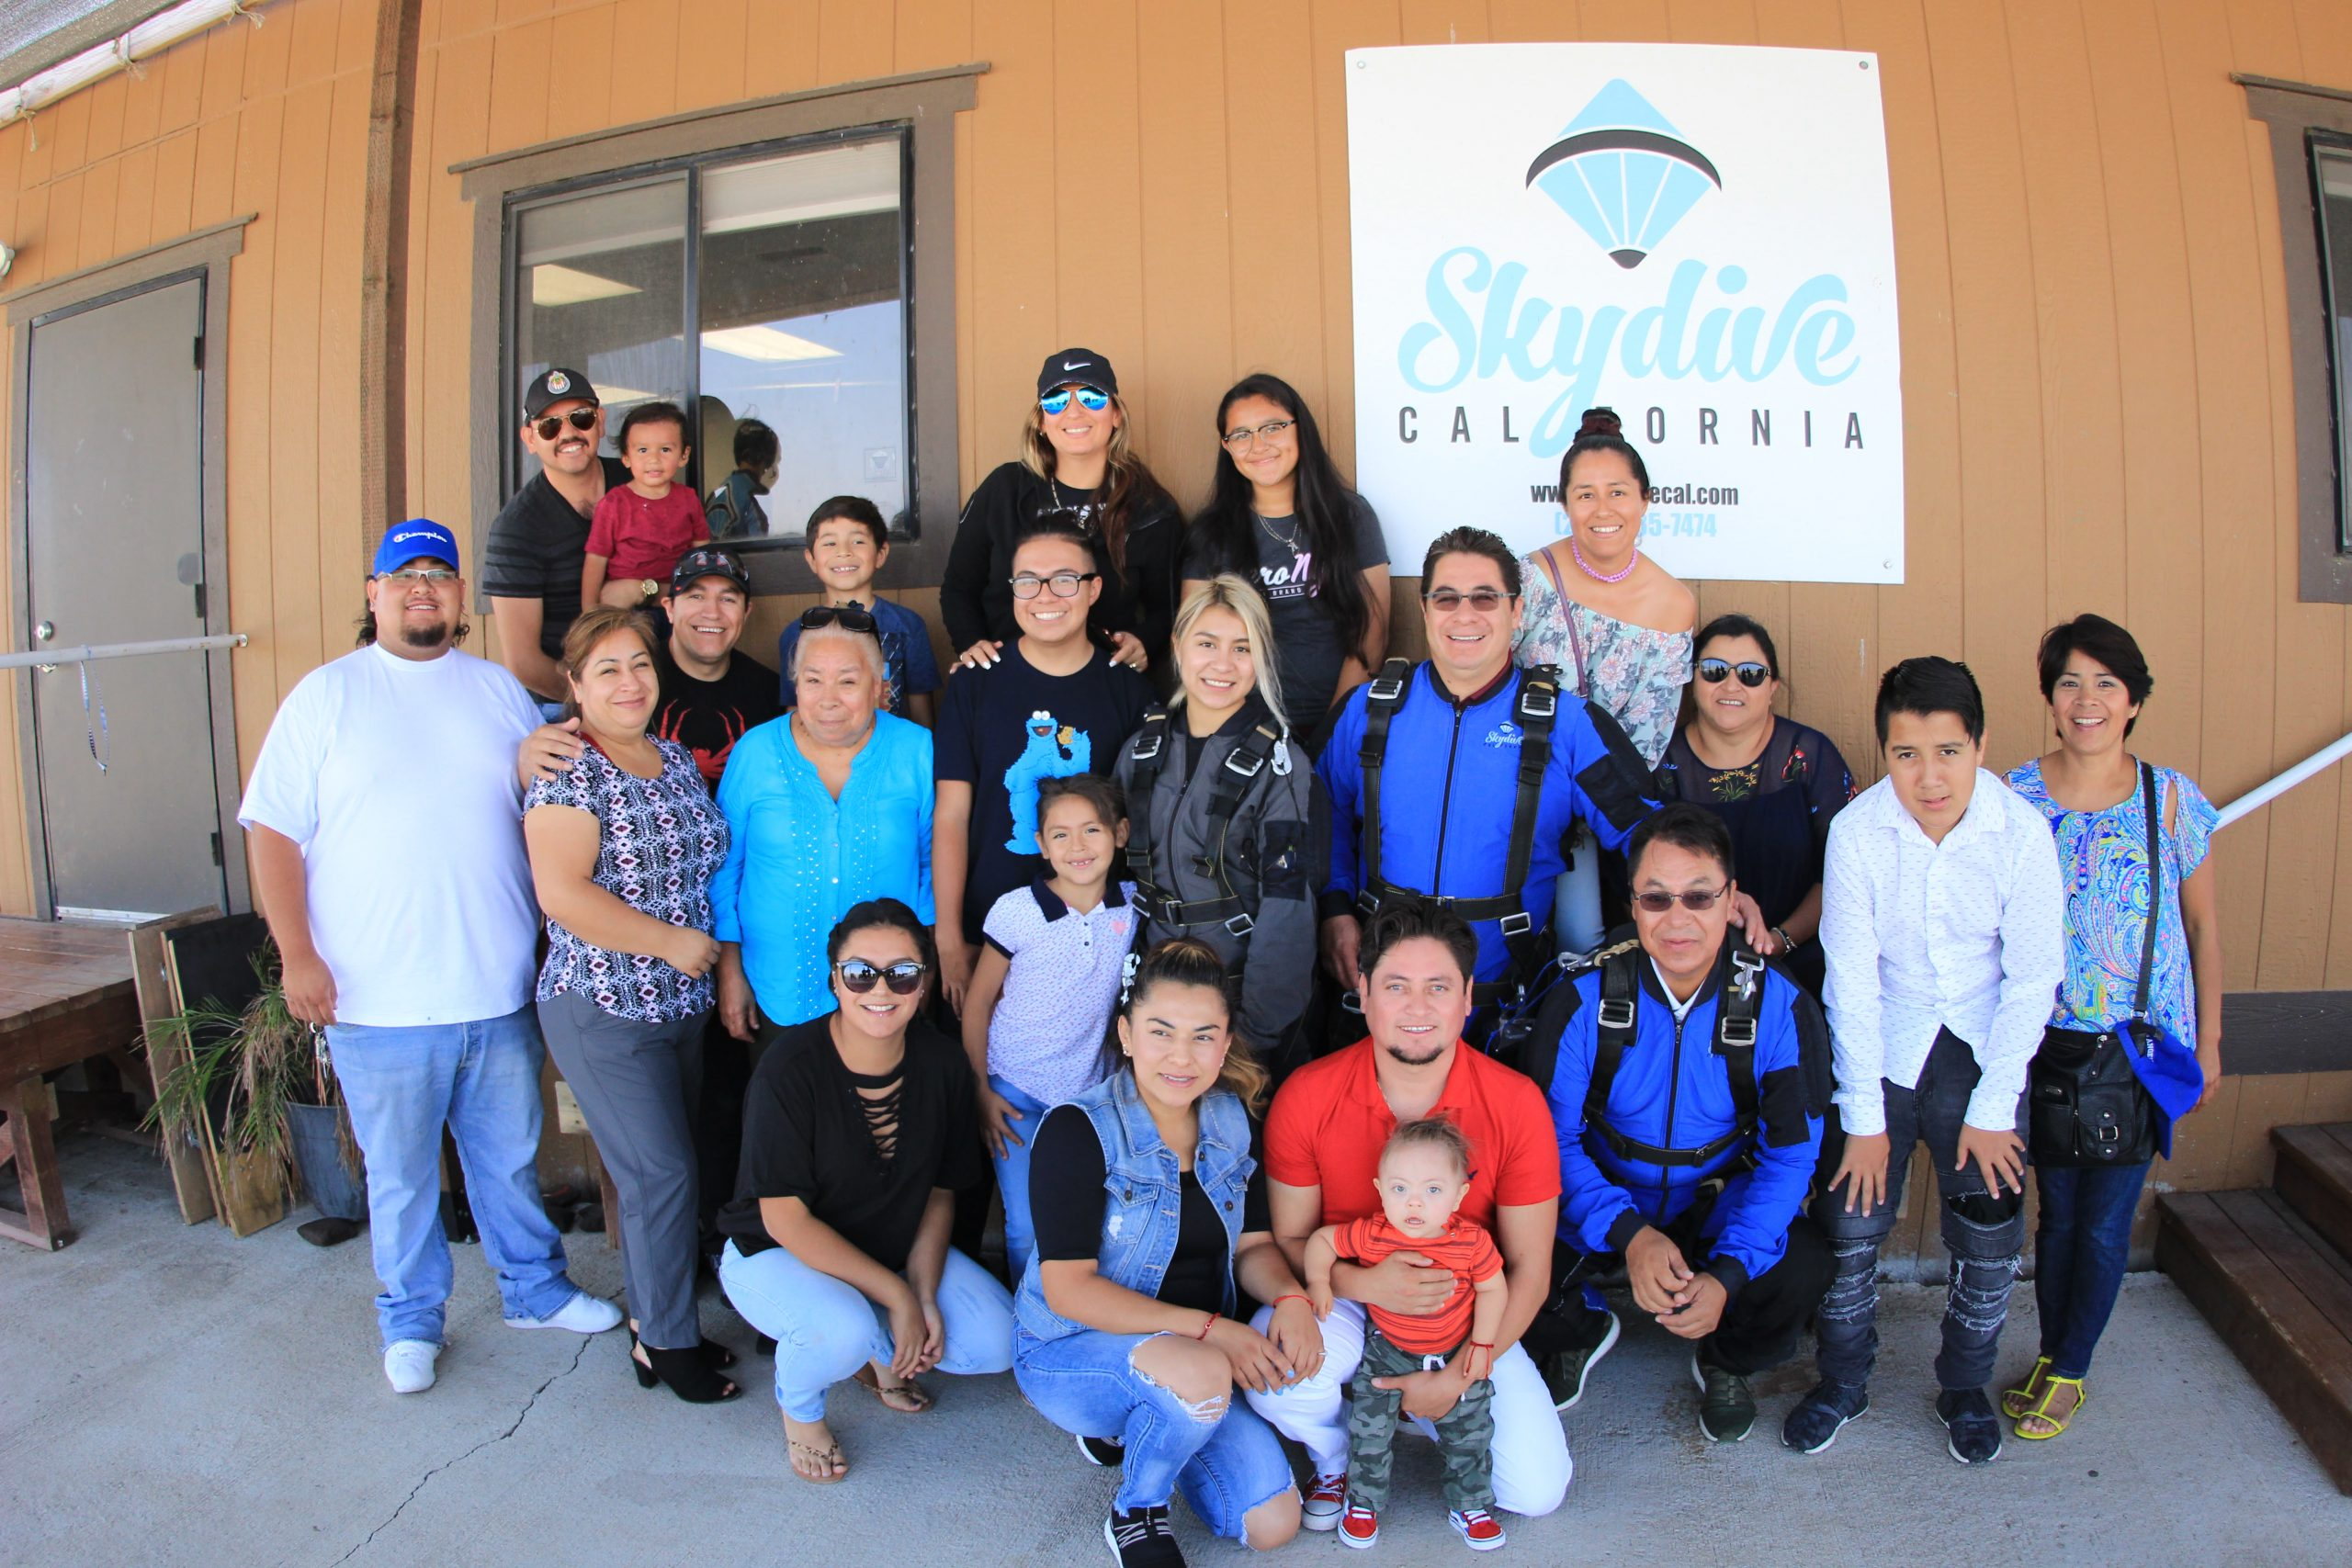 Building Community with Skydiving   Skydive California